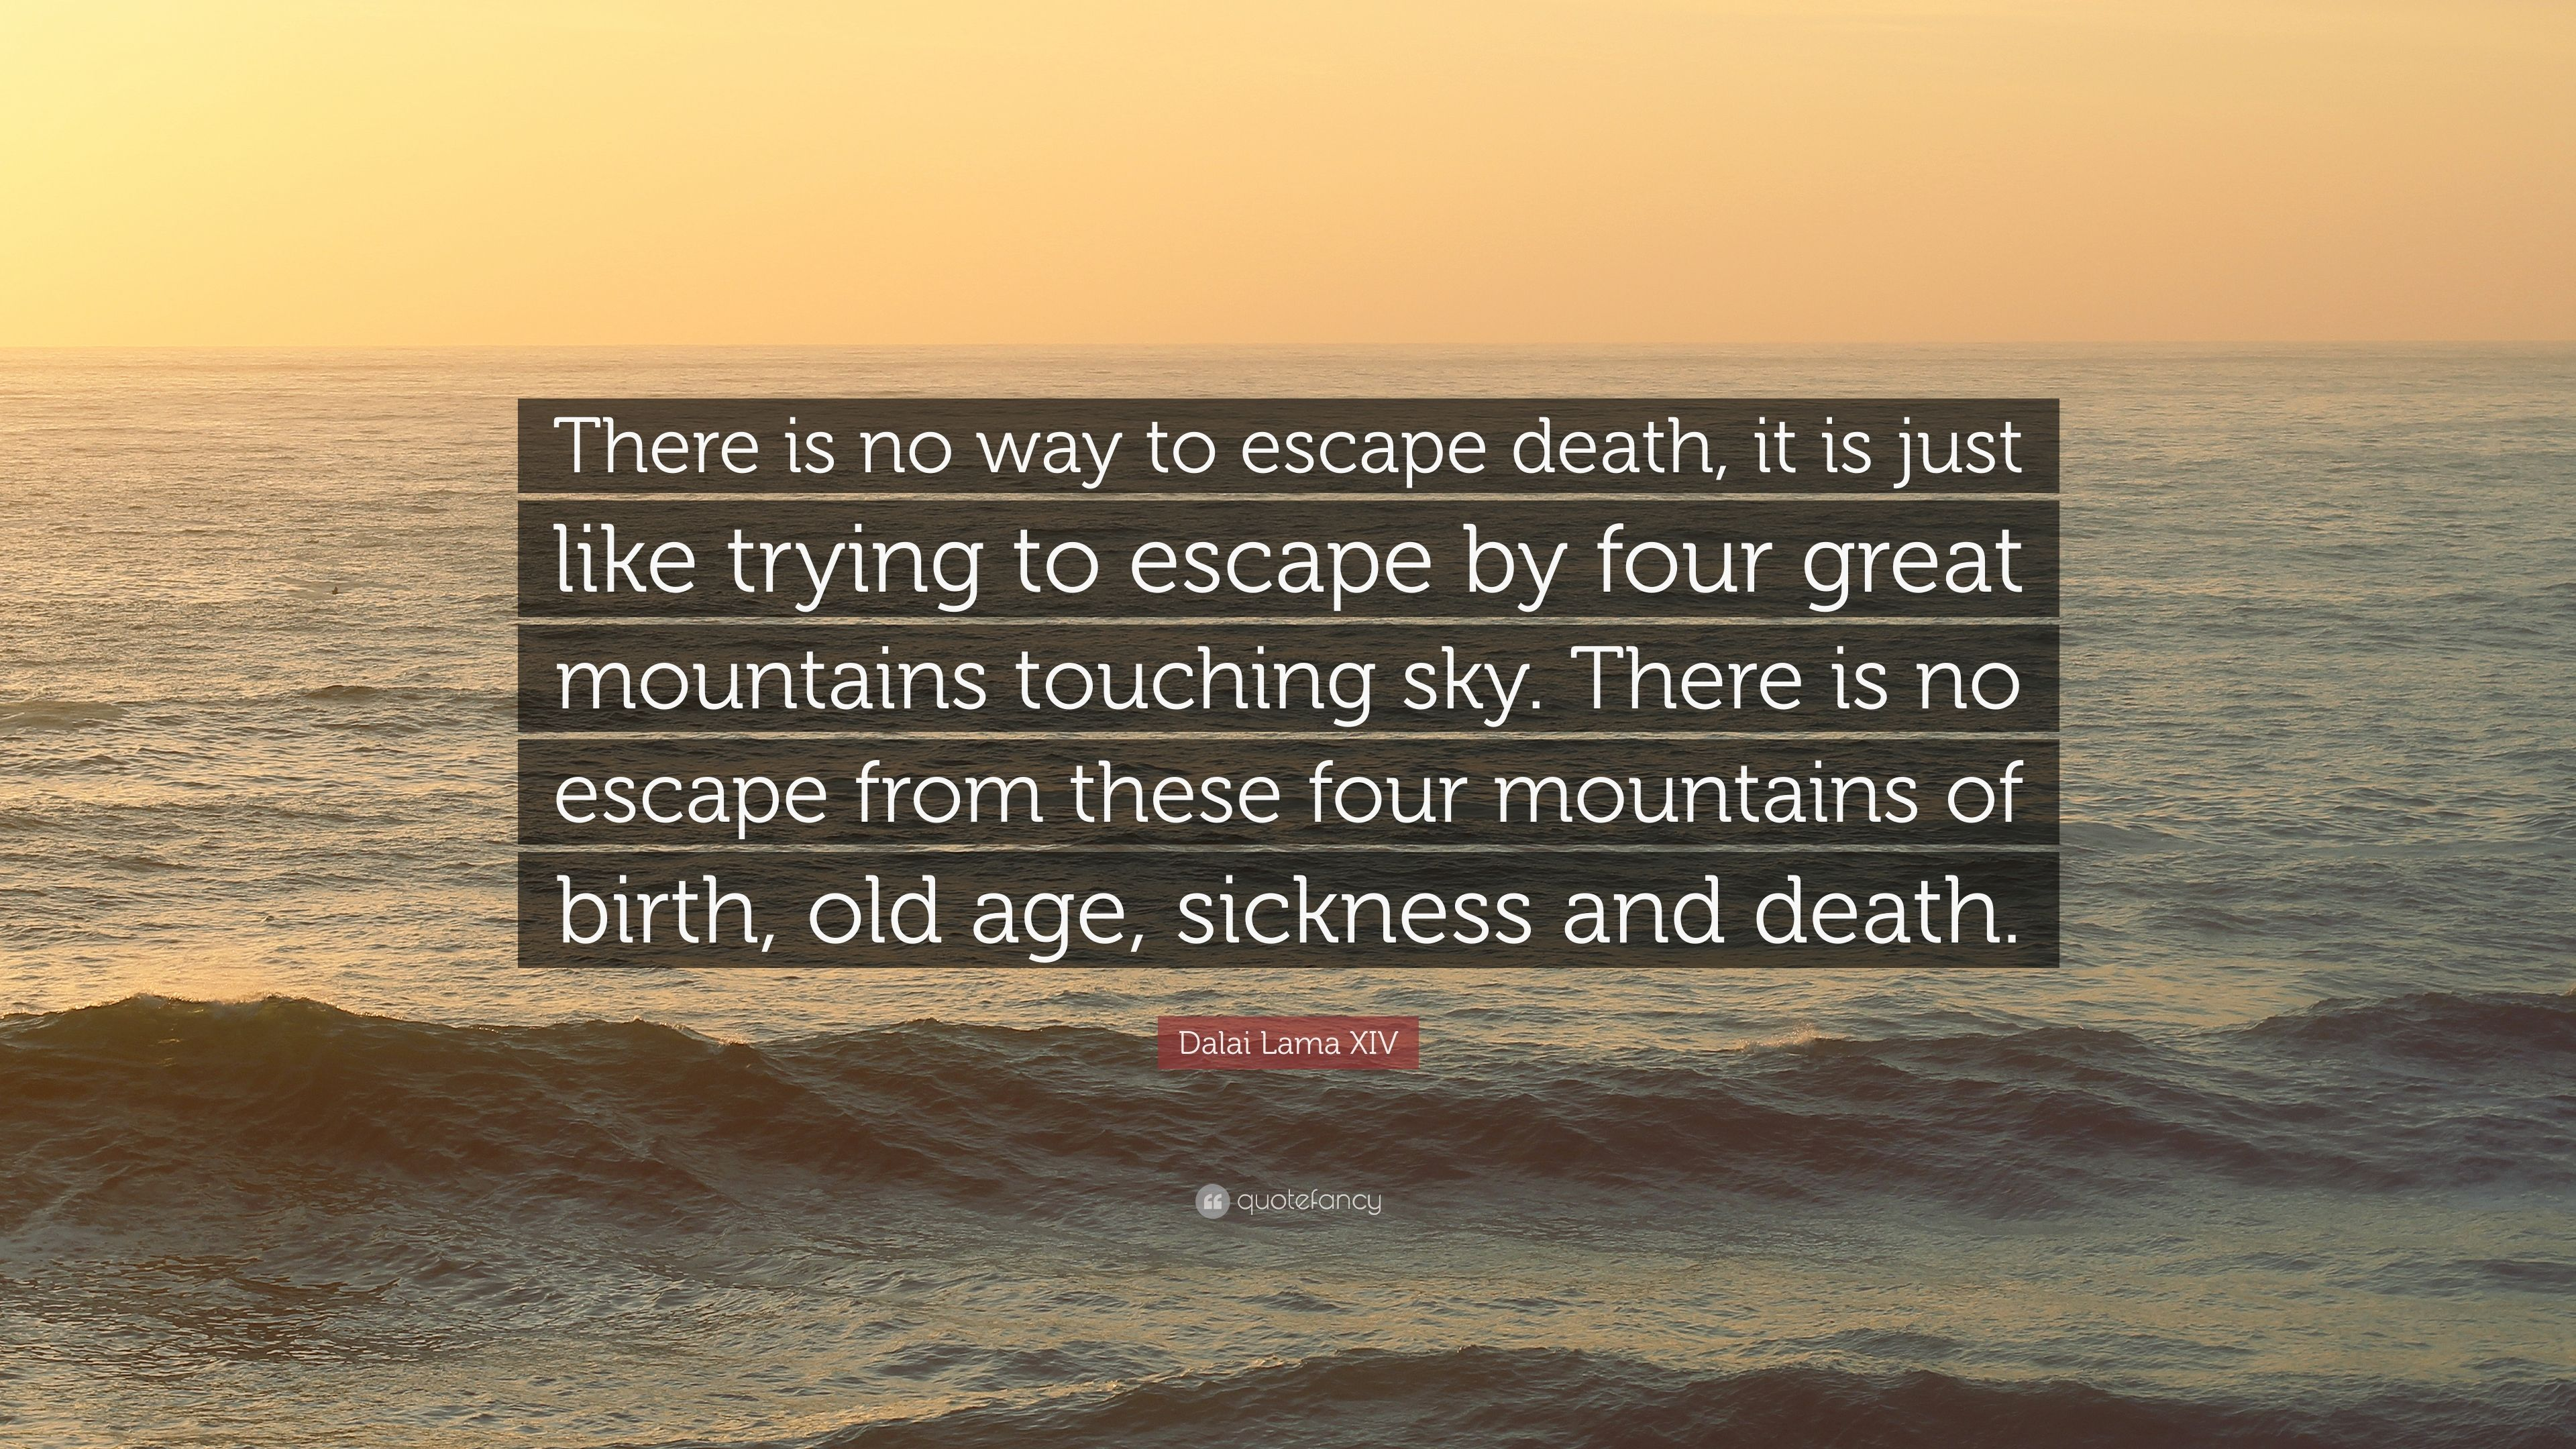 Dalai Lama Xiv Quote There Is No Way To Escape Death It Is Just